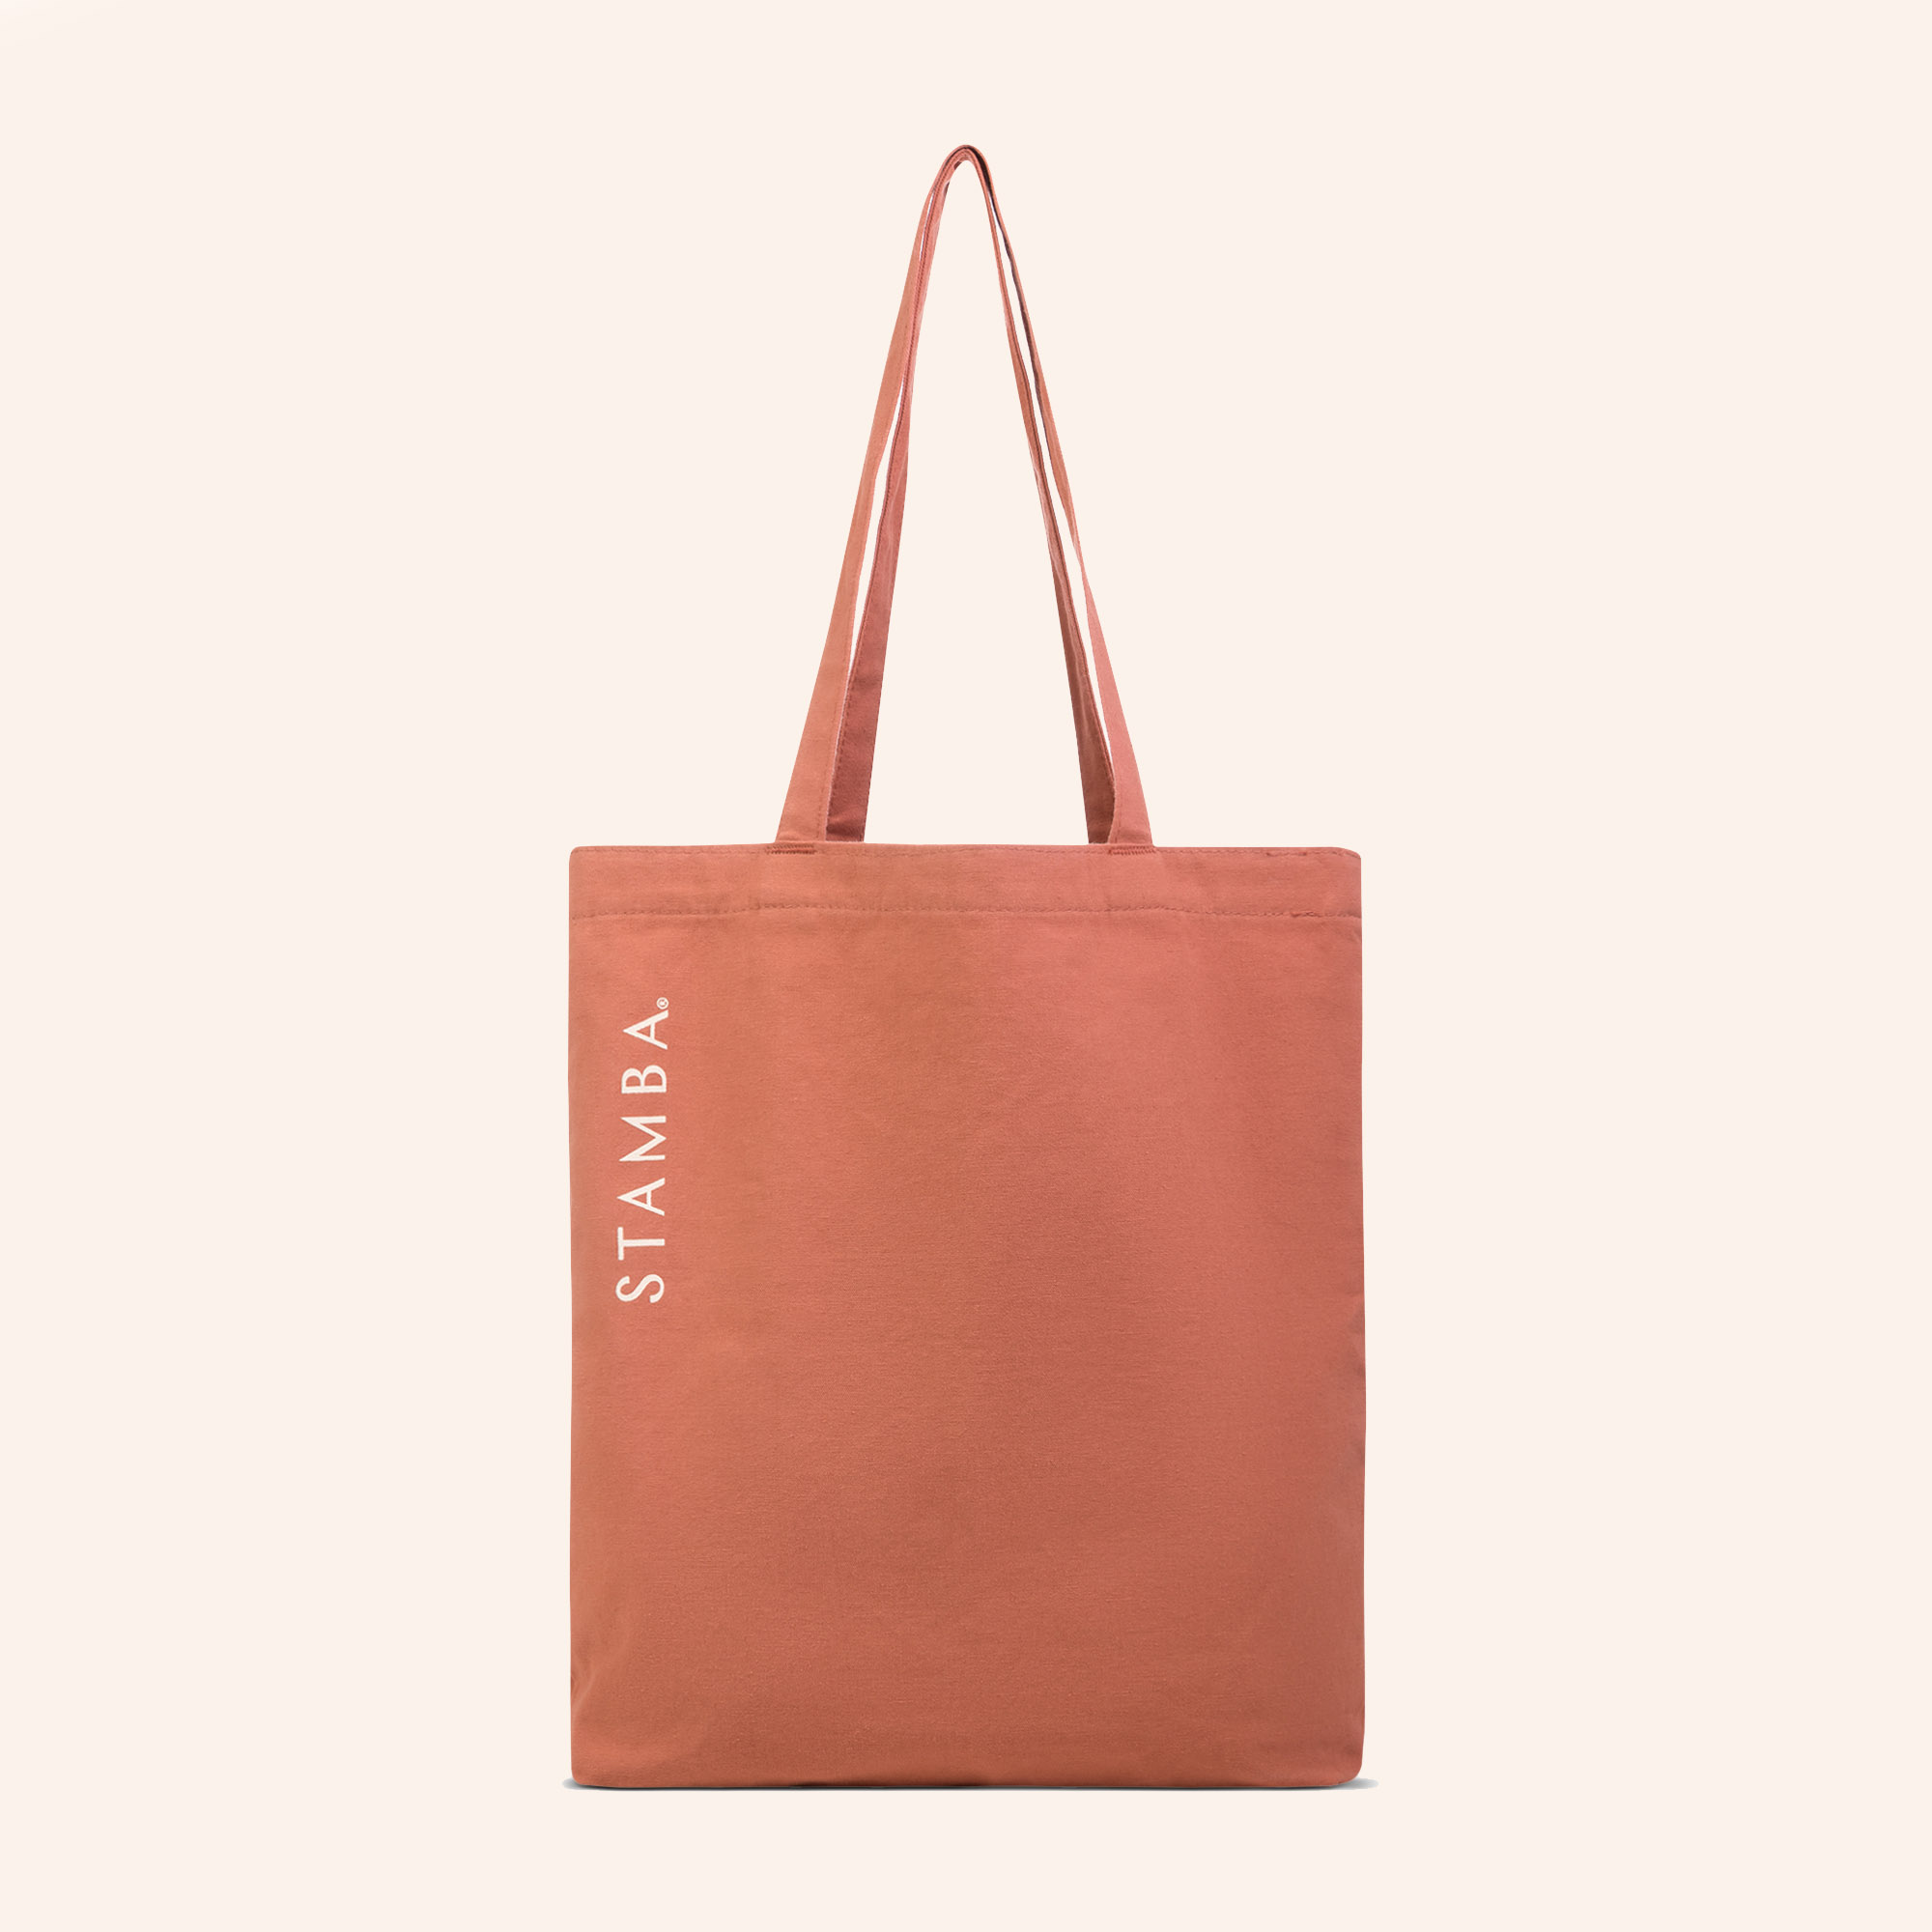 TOTE BAG - Cotton carry-all $25